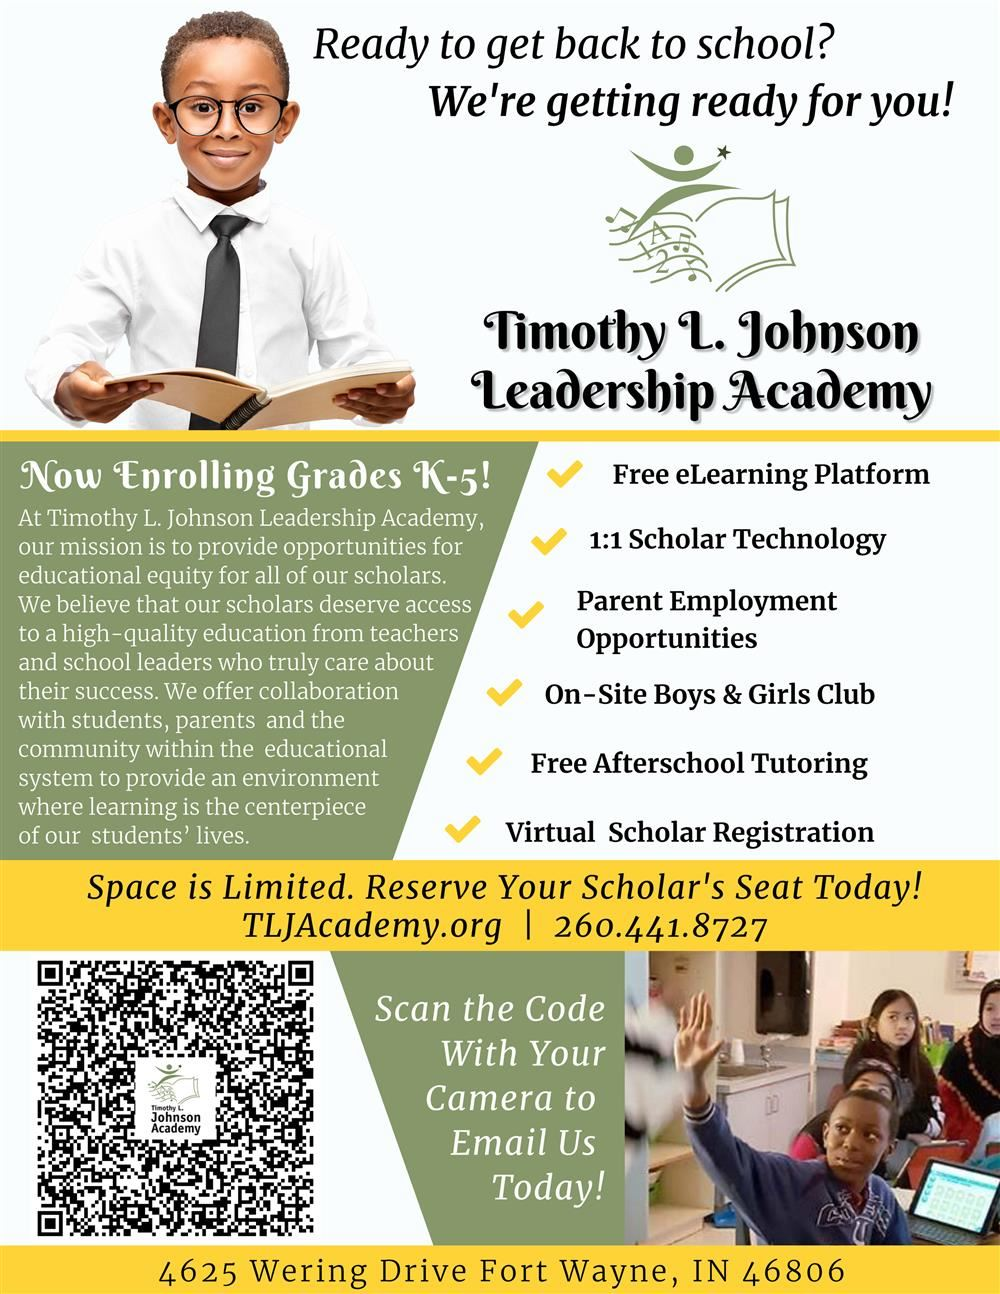 Now Enrolling Grades K-5 at Timothy L. Johnson Academy!